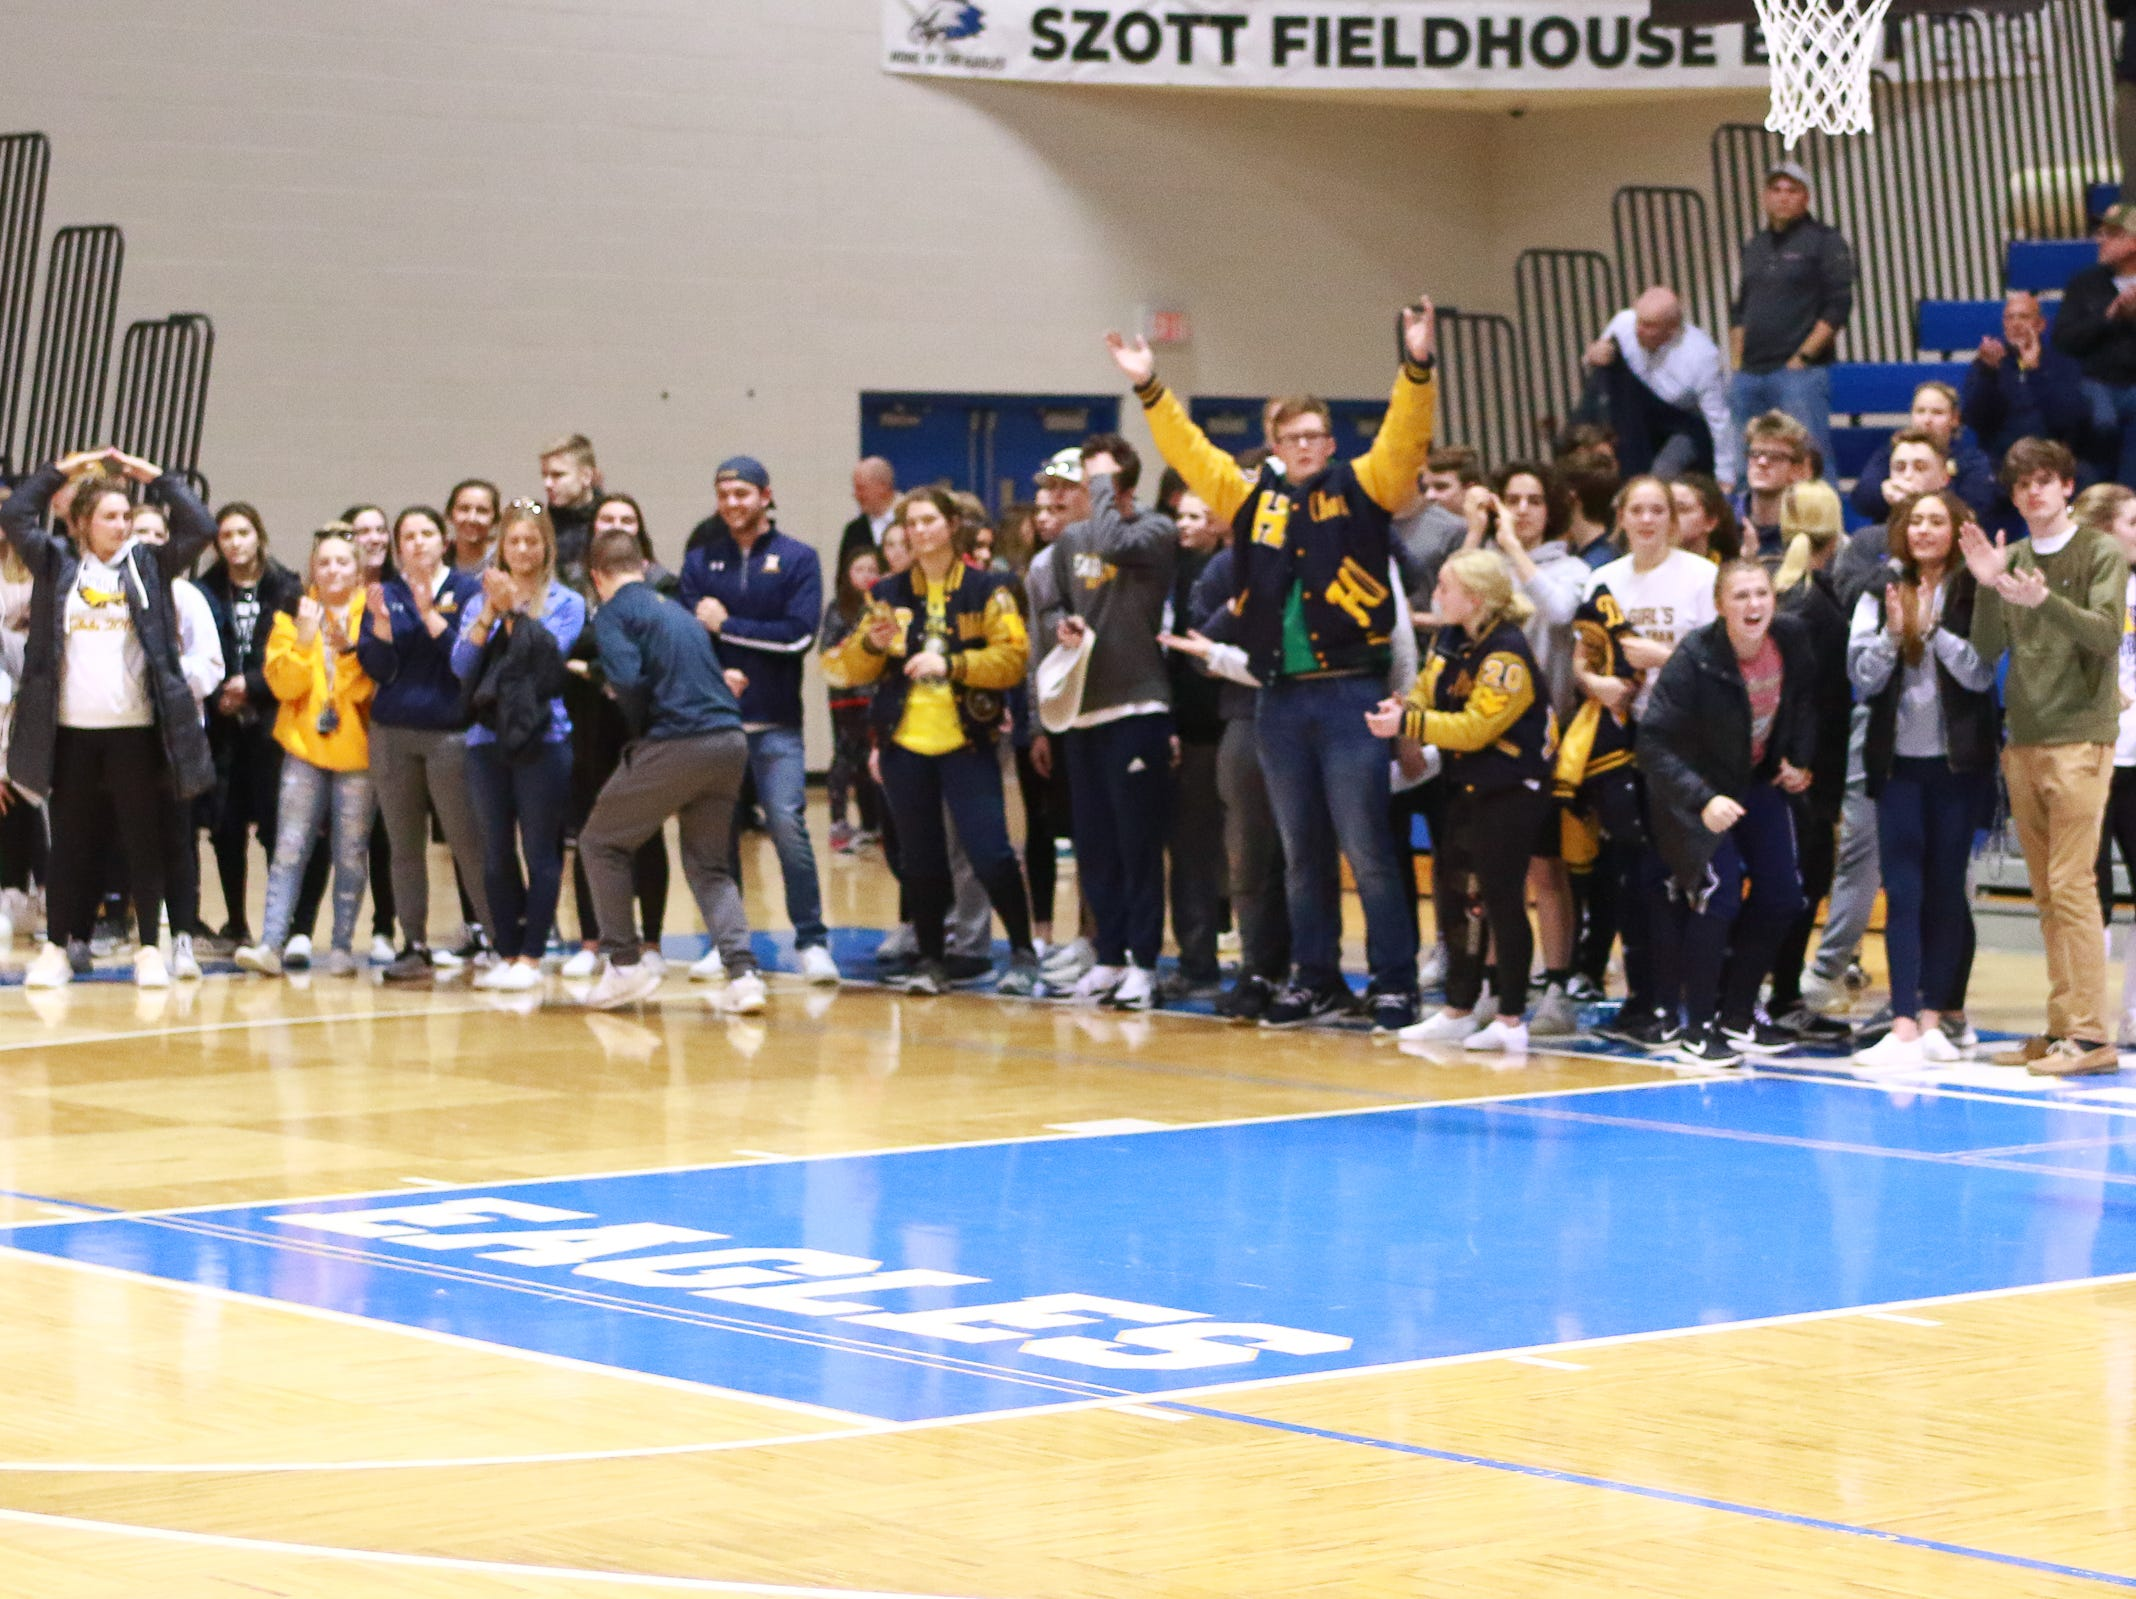 Hartland's student section celebrates a 50-46 victory over Walled Lake Western in a regional championship basketball game at Lakeland on Wednesday, March 13, 2019.